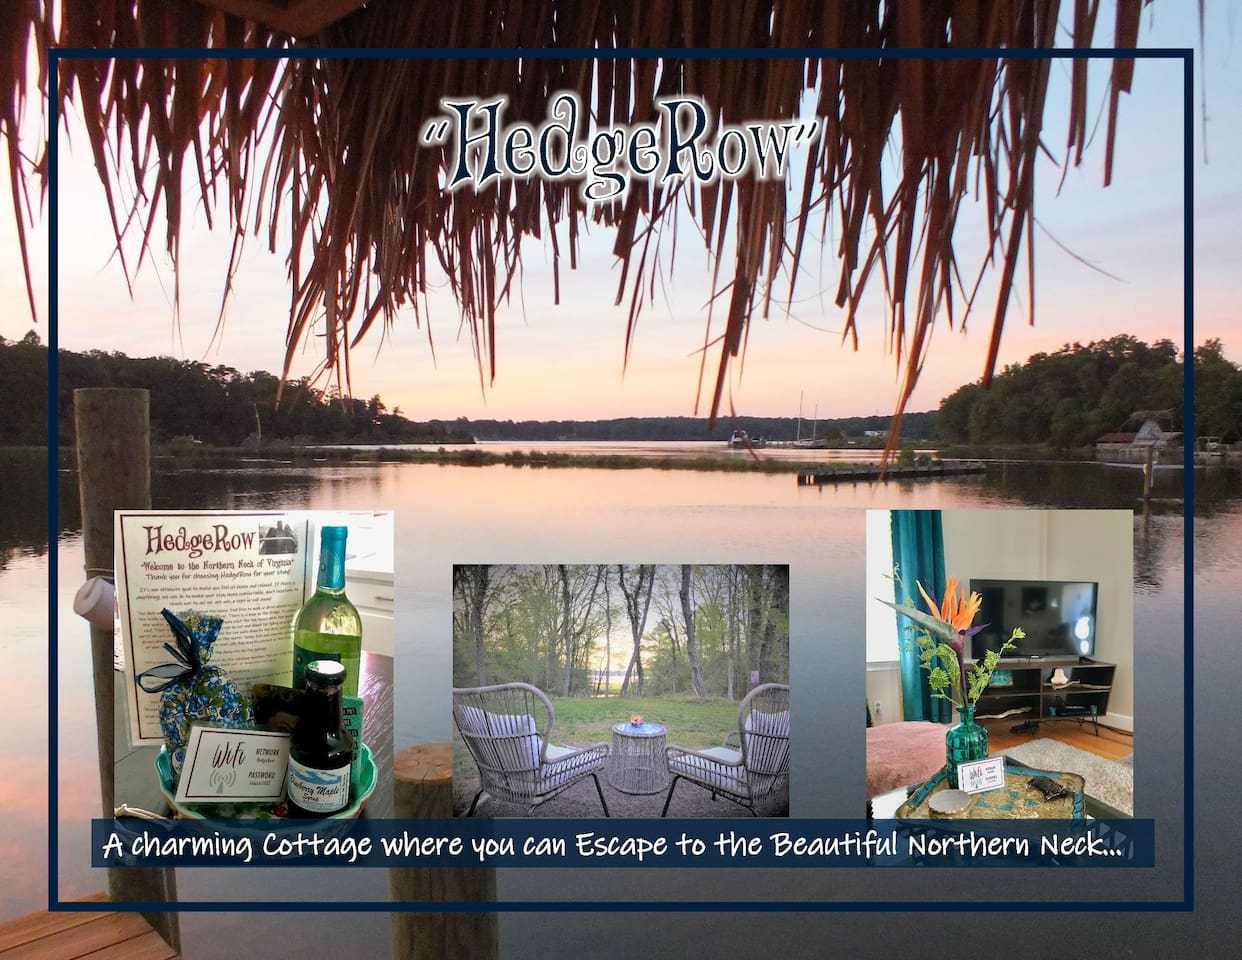 HedgeRow - A charming cottage and Deer Haven, where you can escape to the Beautiful Northern Neck of Virginia.  Come see why this hot spot is on the rise for Towns to visit in Virginia.